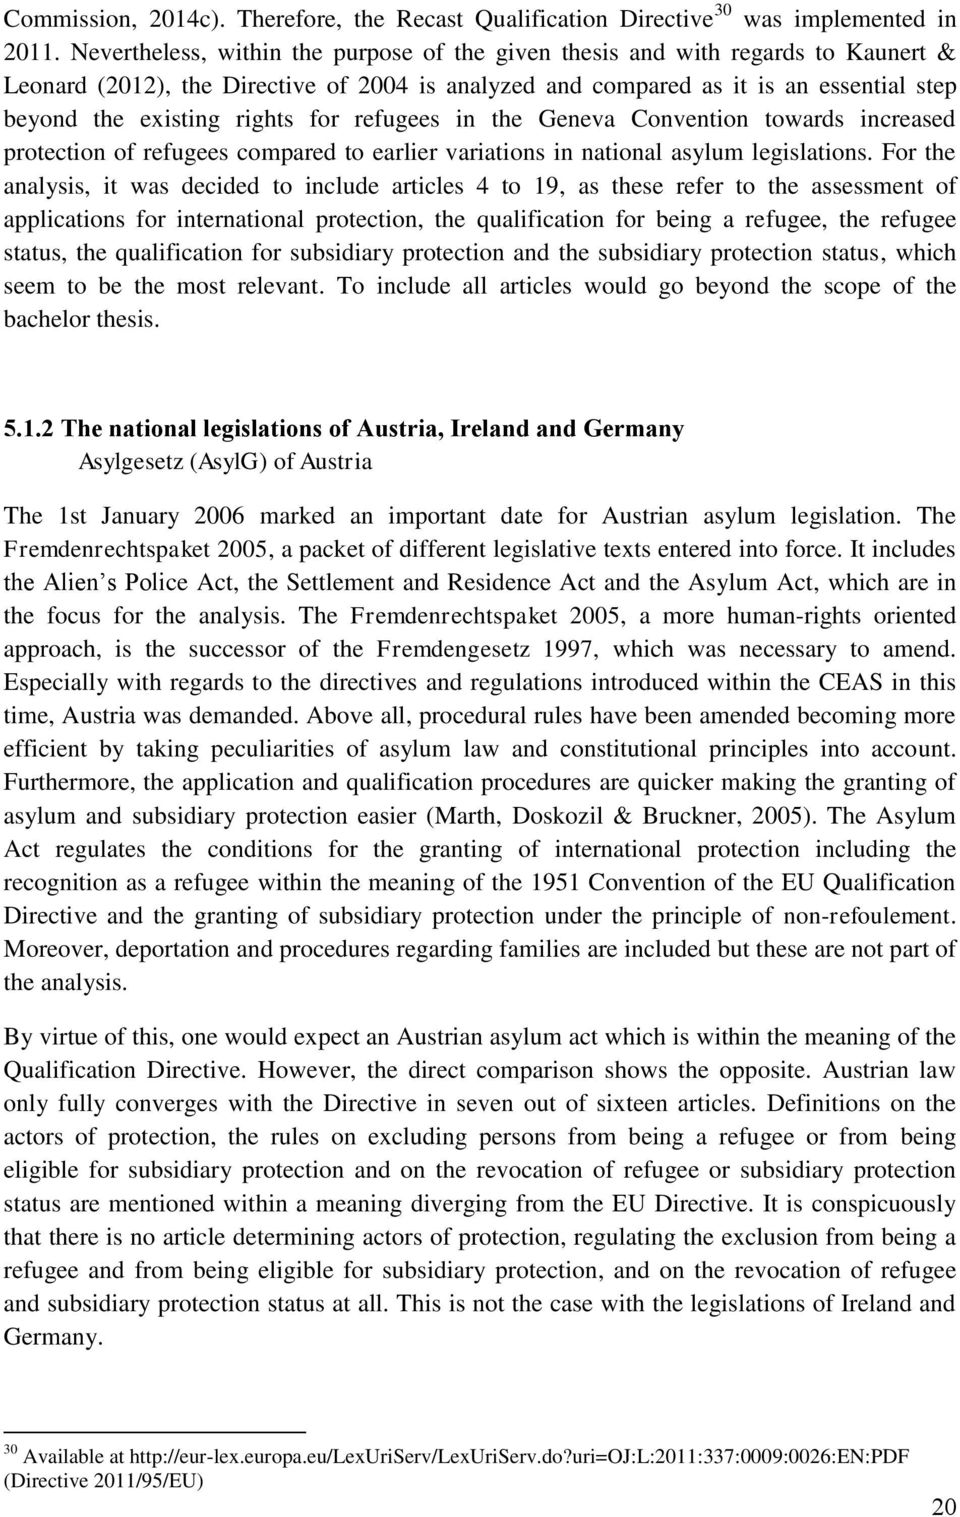 for refugees in the Geneva Convention towards increased protection of refugees compared to earlier variations in national asylum legislations.